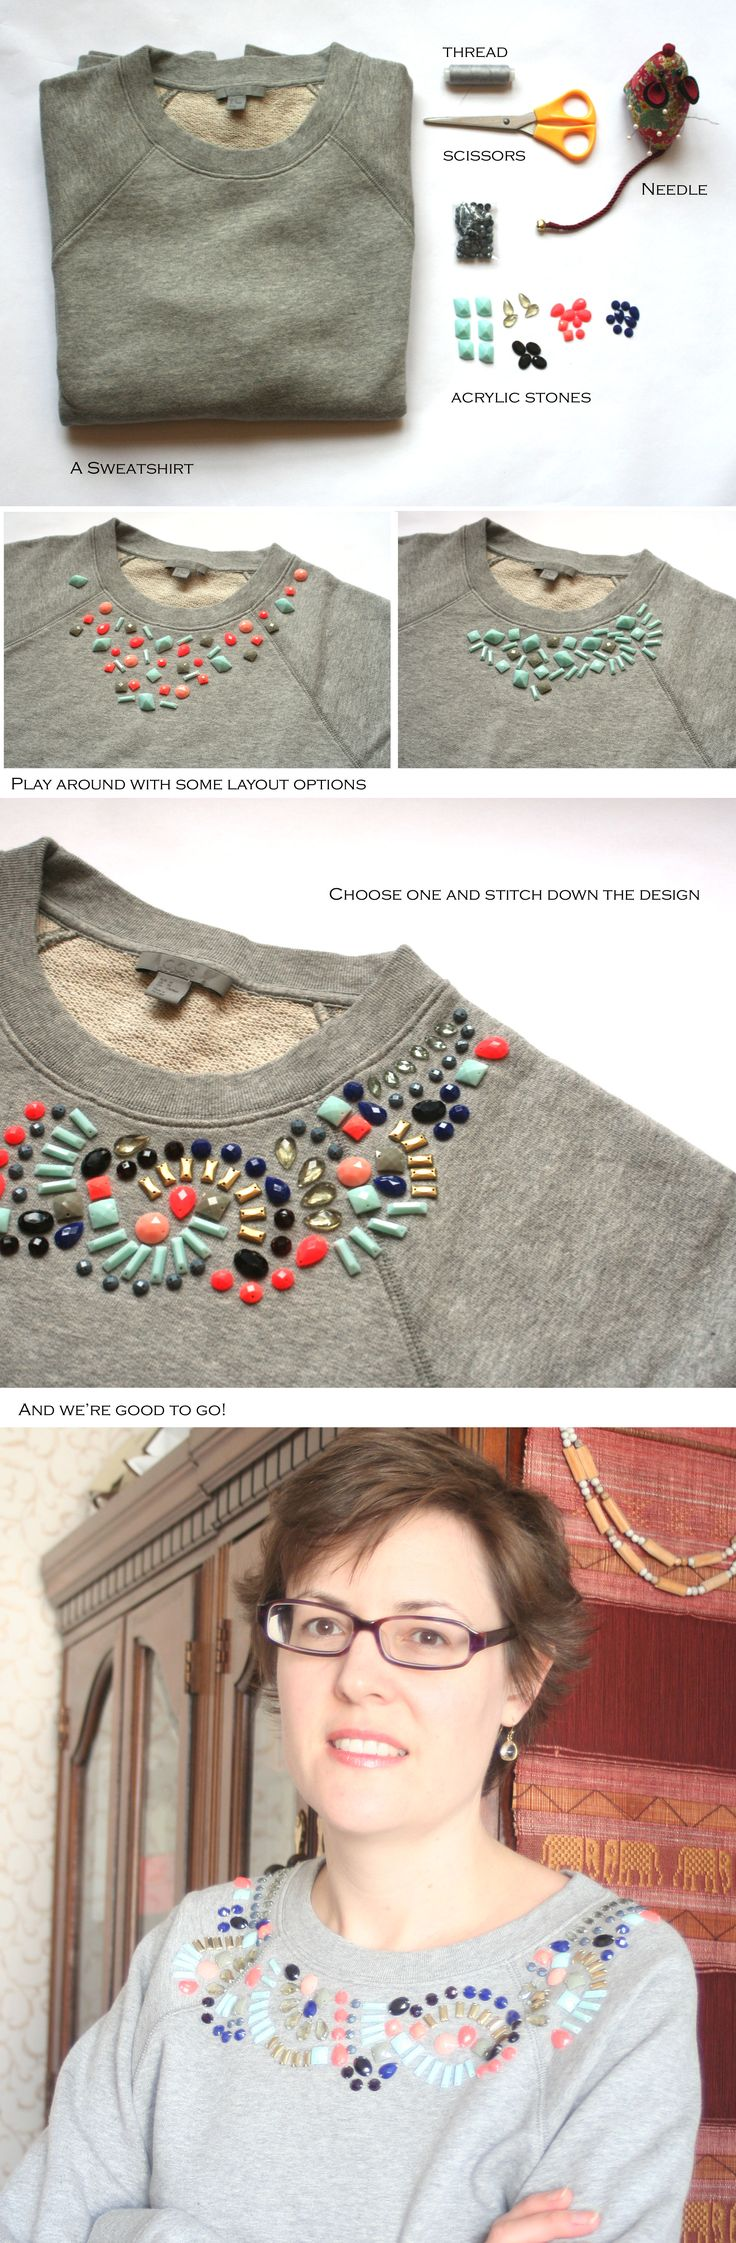 DIY  embellished sweatshirt